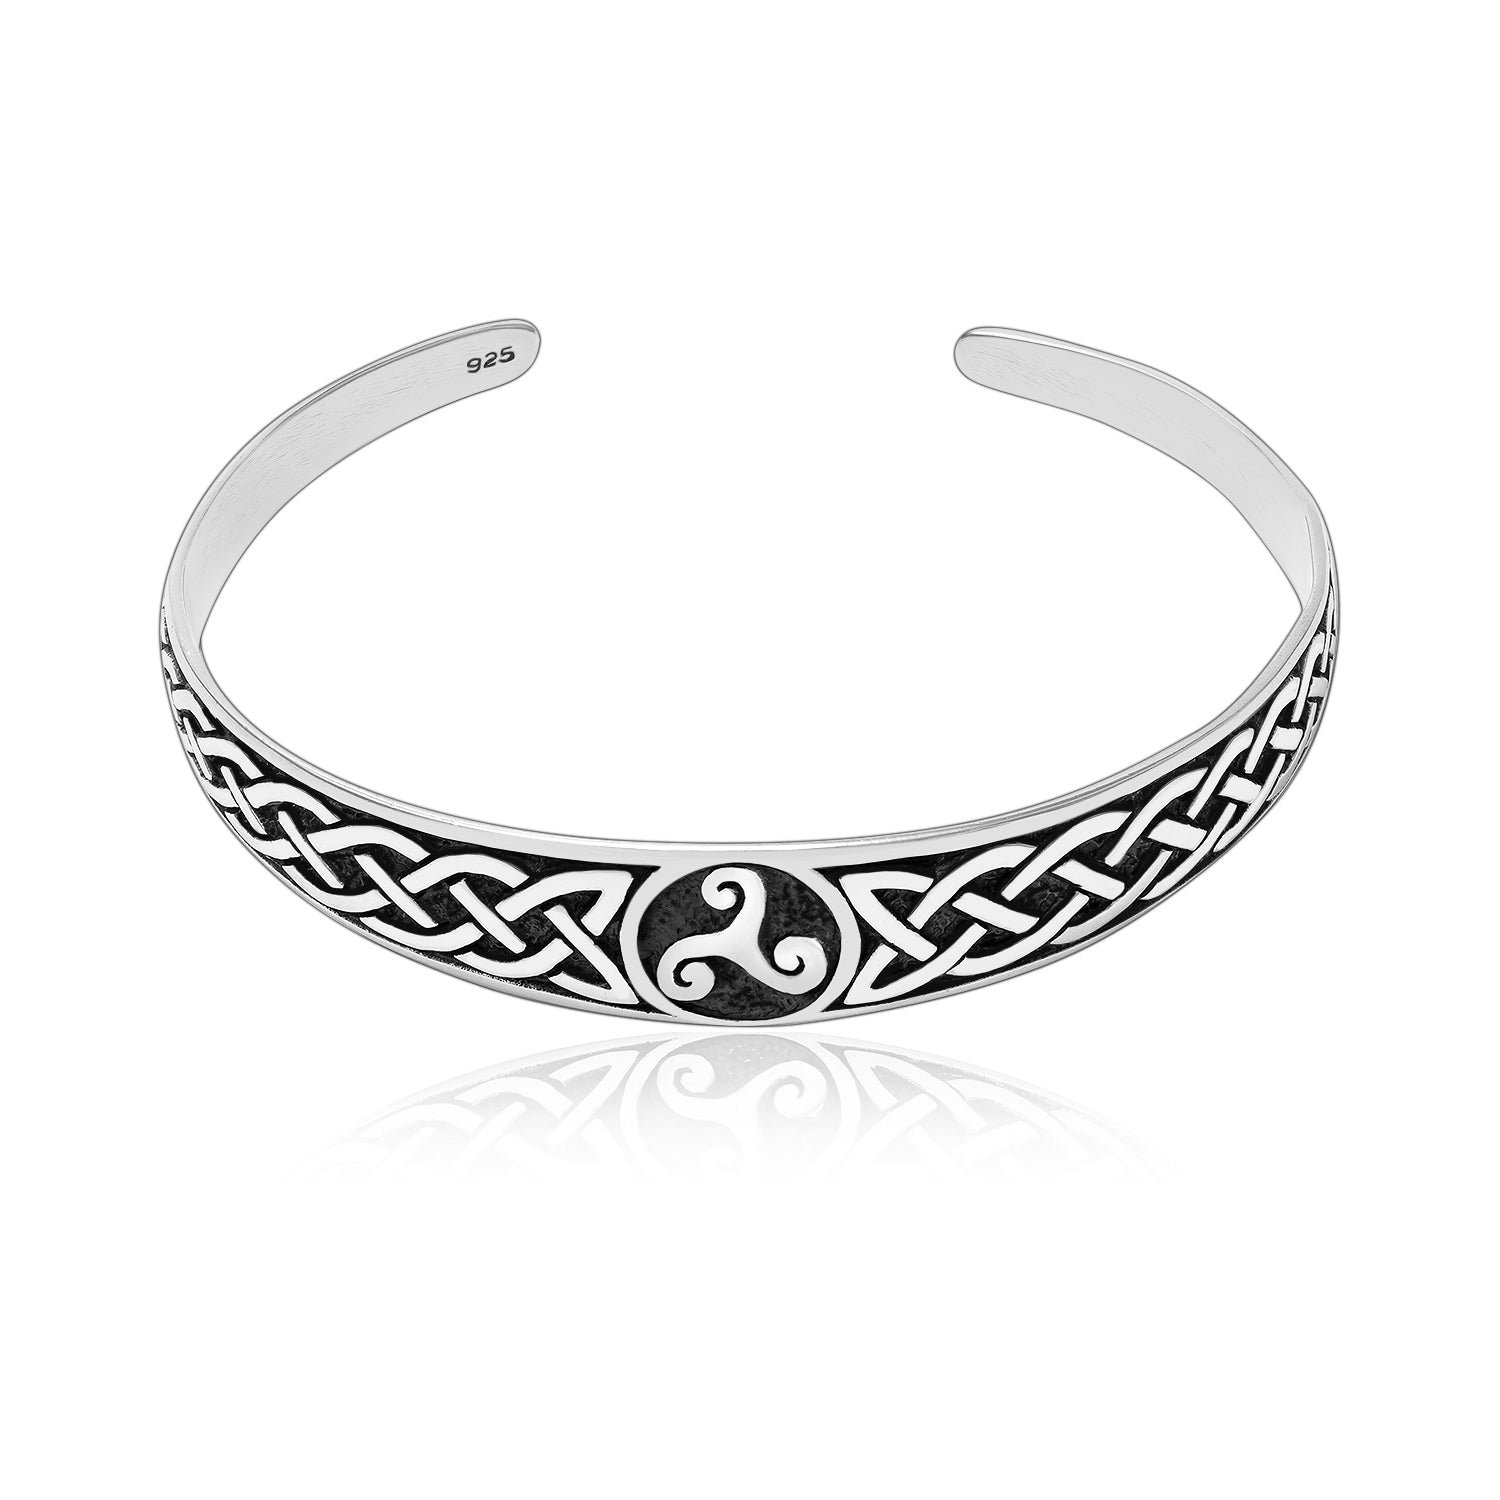 925 Sterling Silver Celtic Triskelion with Infinity Knots Bangle